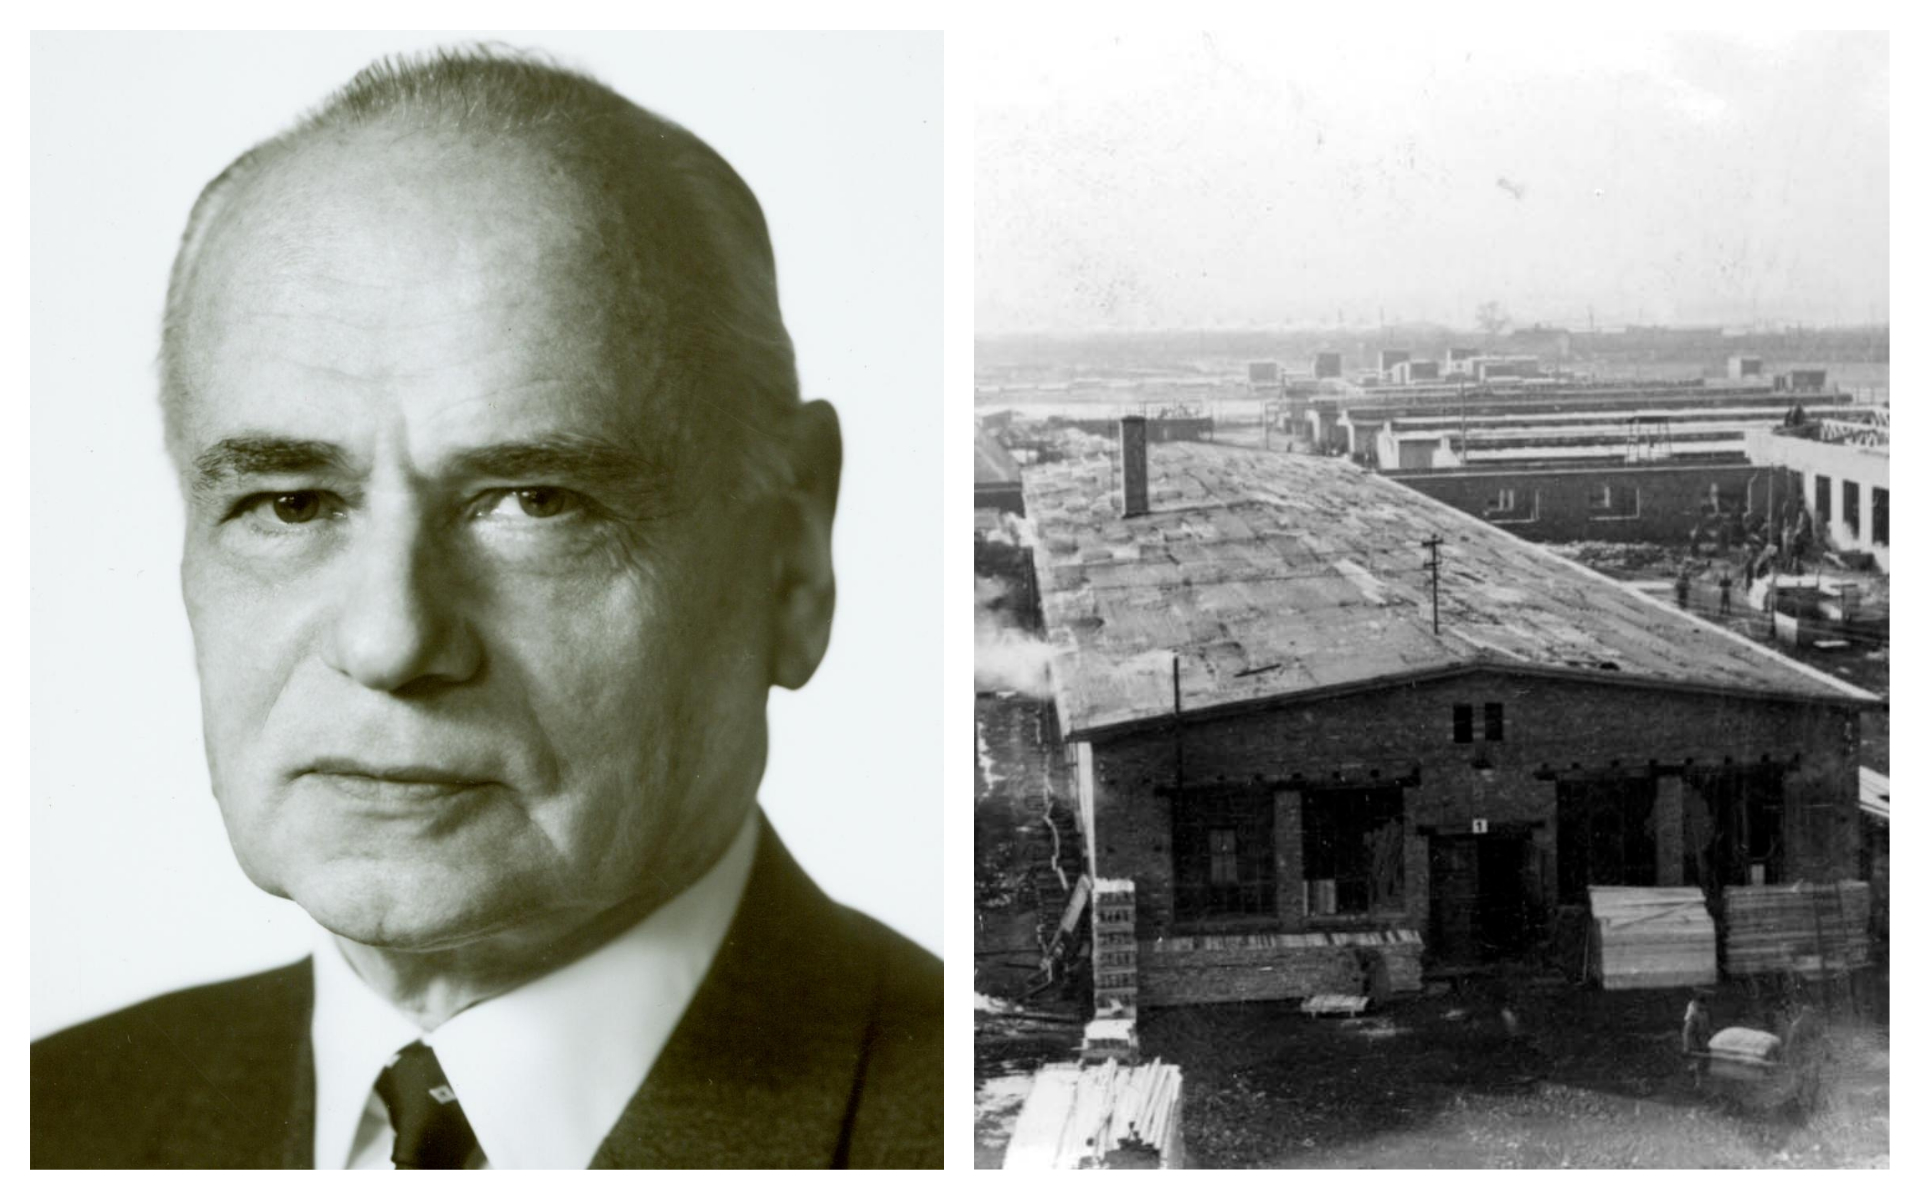 Head Of Firm That Insured Auschwitz Workshops Stripped Of Posthumous